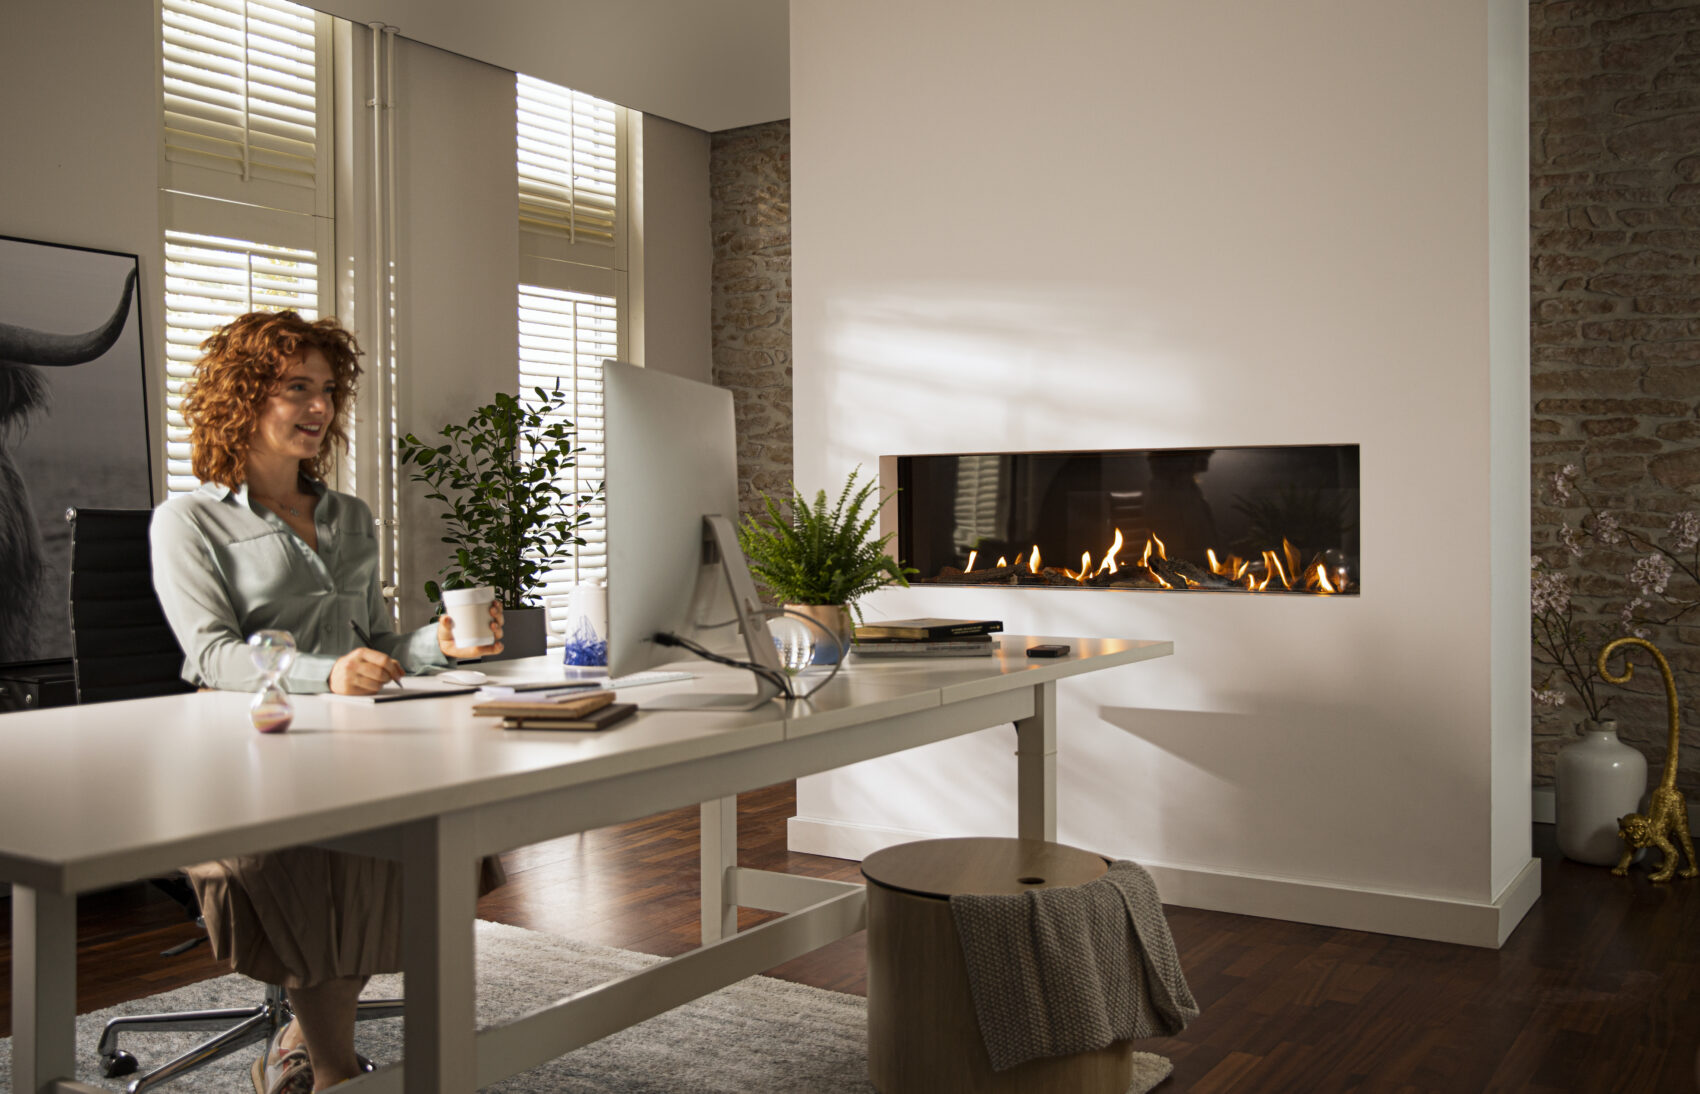 How to choose the right fireplace?